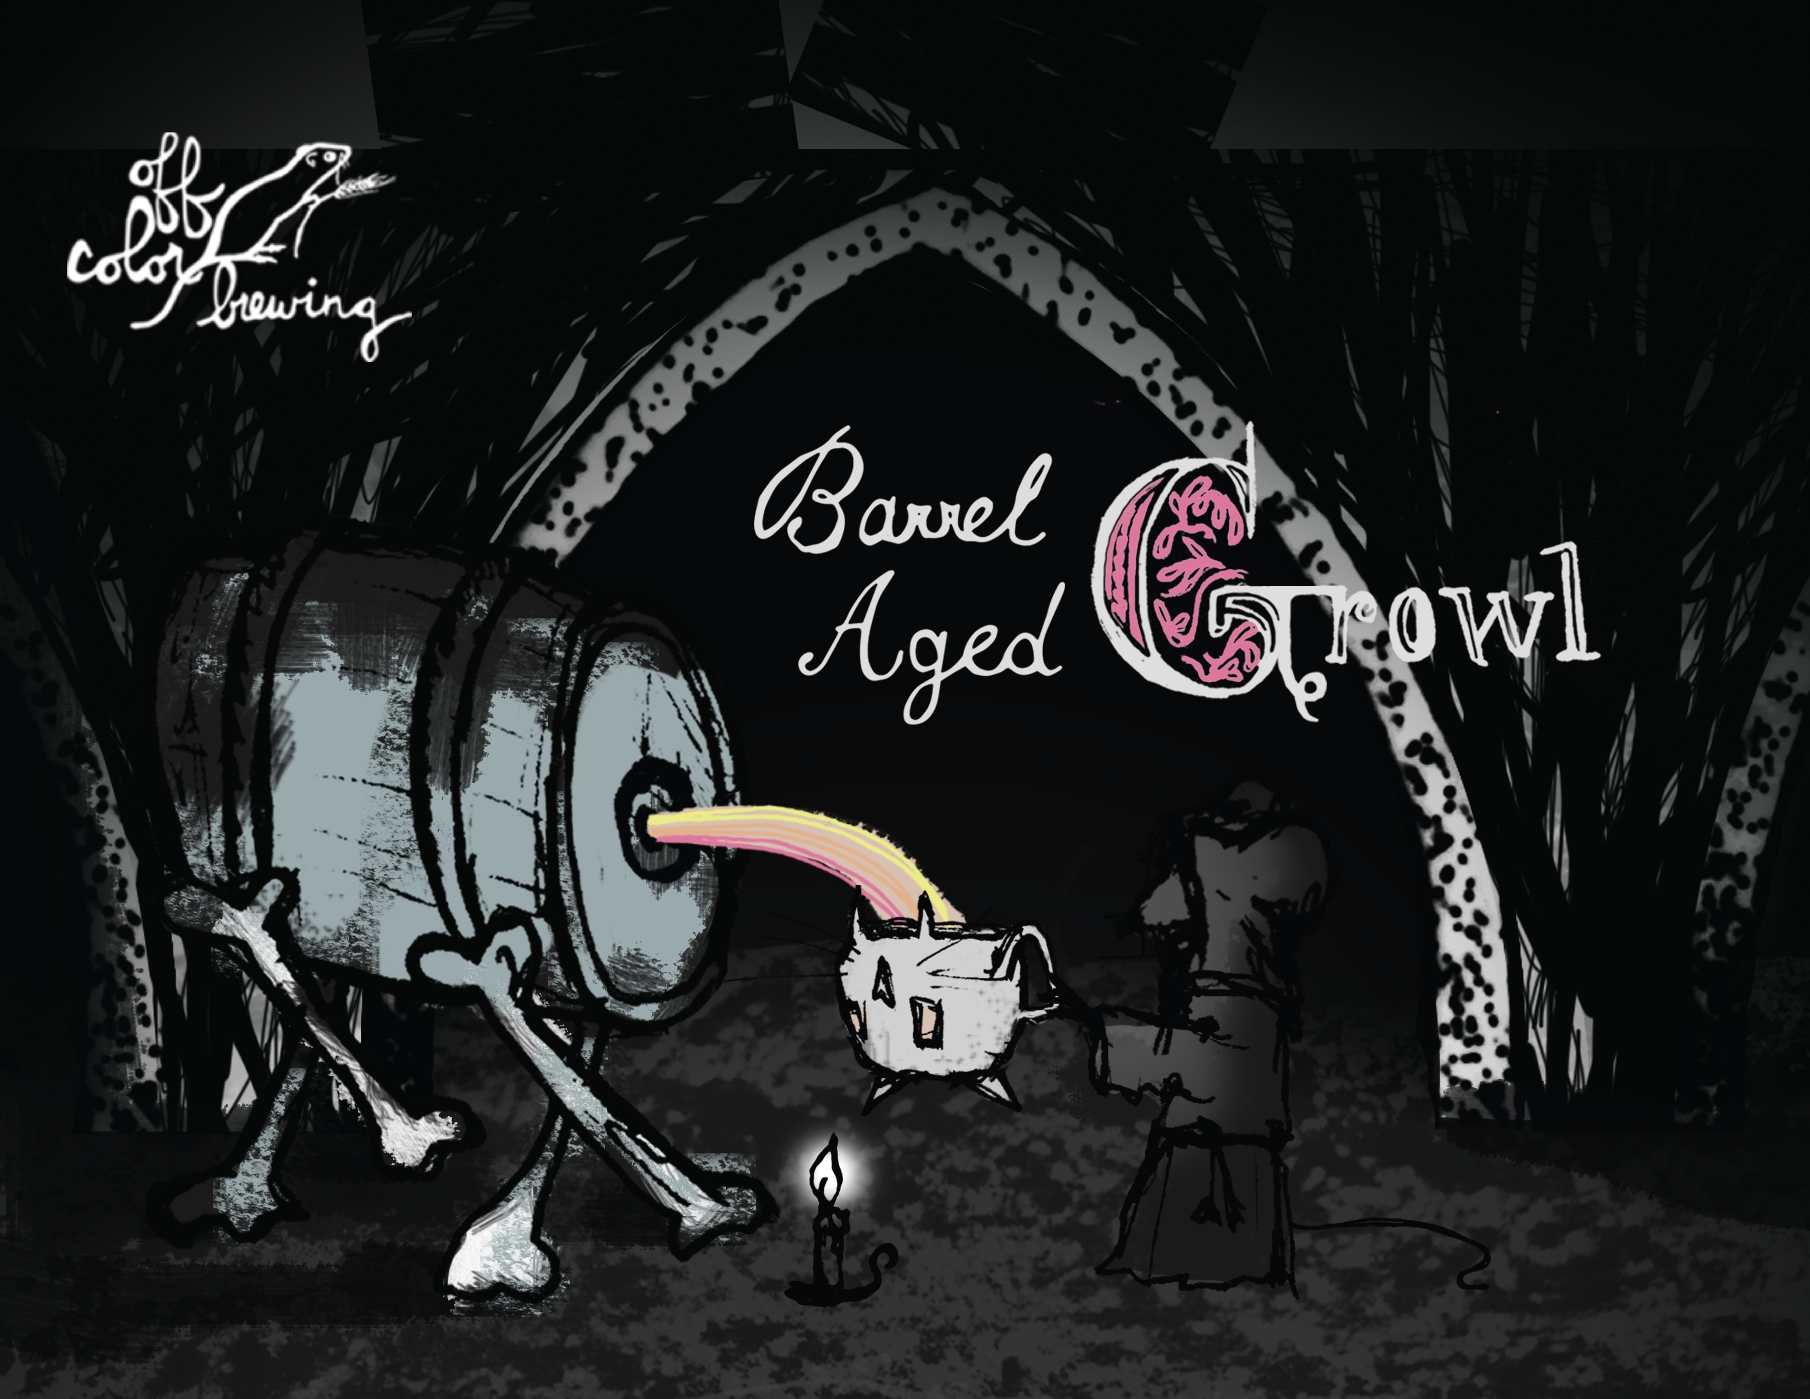 Barrel-Aged Growl Quadrupel Ale aged in Rye Whiskey Barrels   Availability:  Fall   ABV:  10% |  GRAVITY:  20 P |  IBUs:  28   MALTS:  Pils, Dark Munich, Oats, Dark Crystal   HOPS:  Nugget   SECRET INGREDIENTS:  Dark Candi Syrup, Second-use Willett 2 Year Rye Barrels